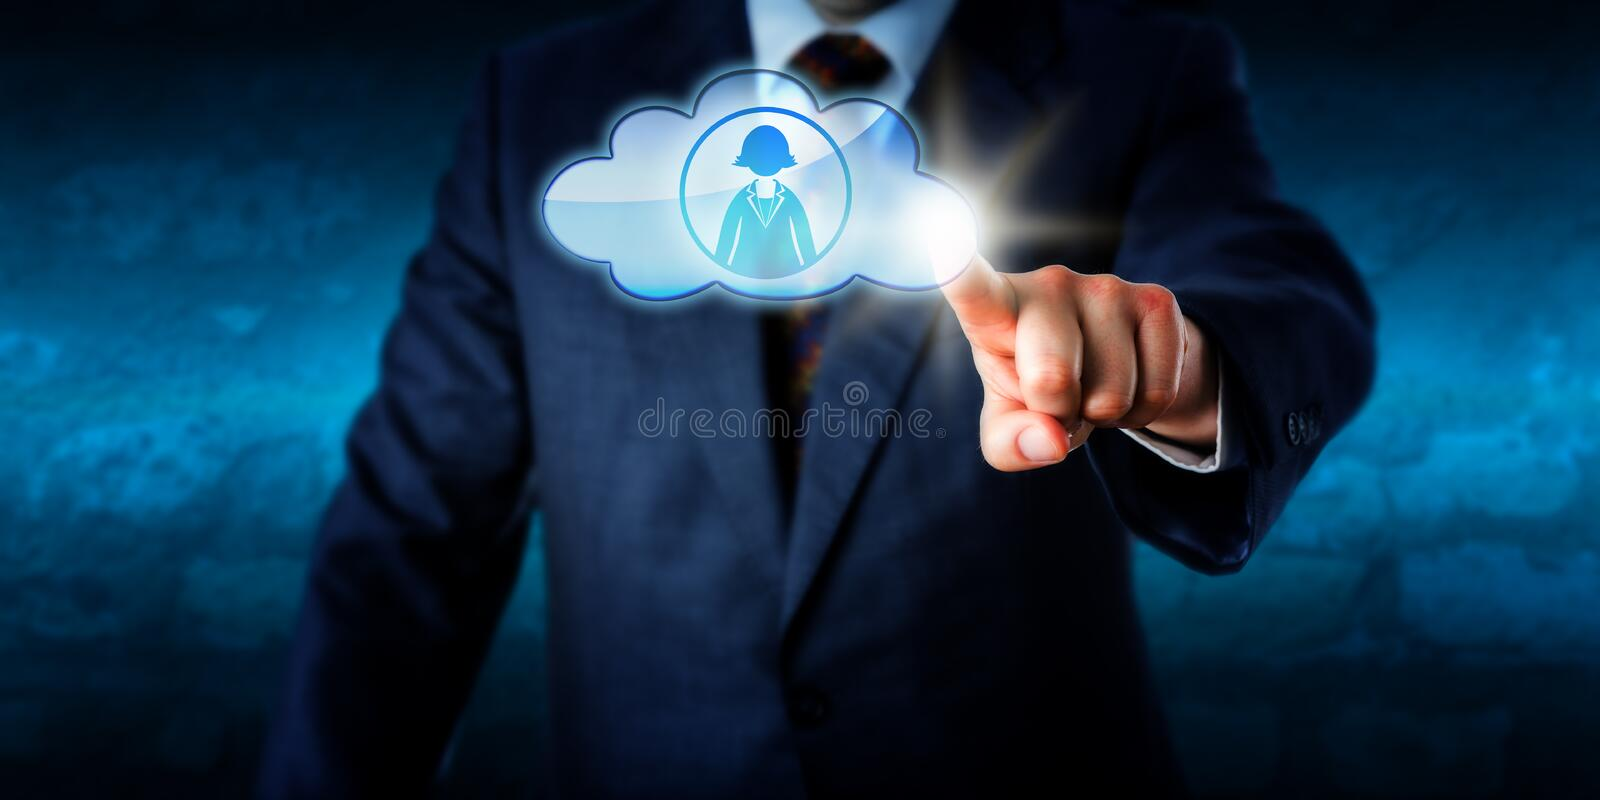 Directeur Connecting With Female Peer Via The Cloud image libre de droits